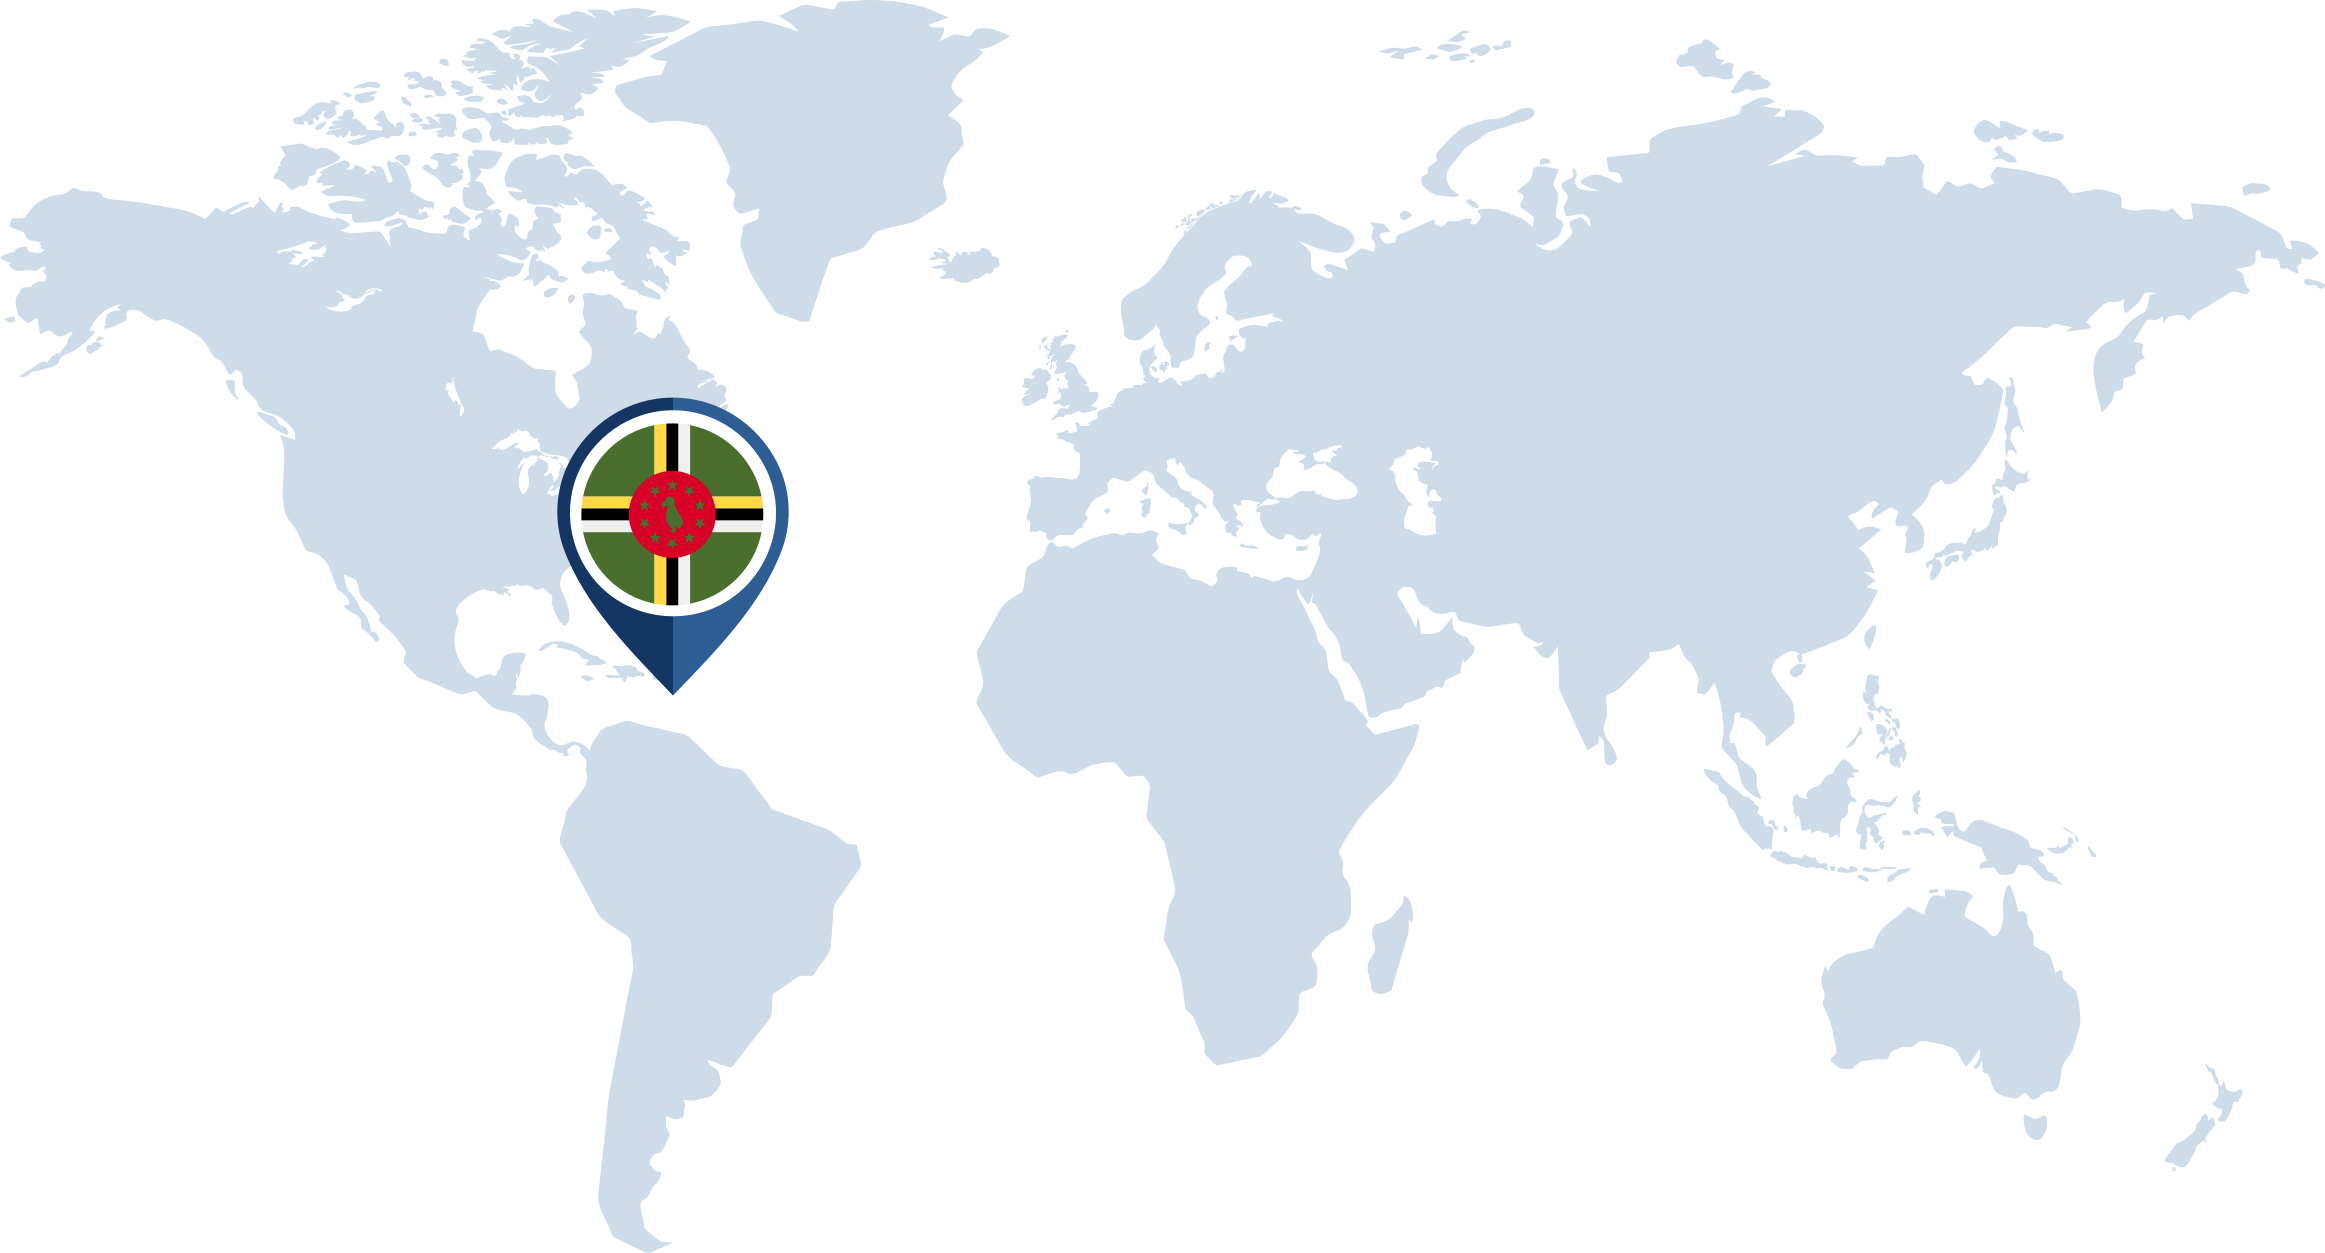 https://bluemina.com/wp-content/uploads/2020/02/Dominica-Location-and-map.png